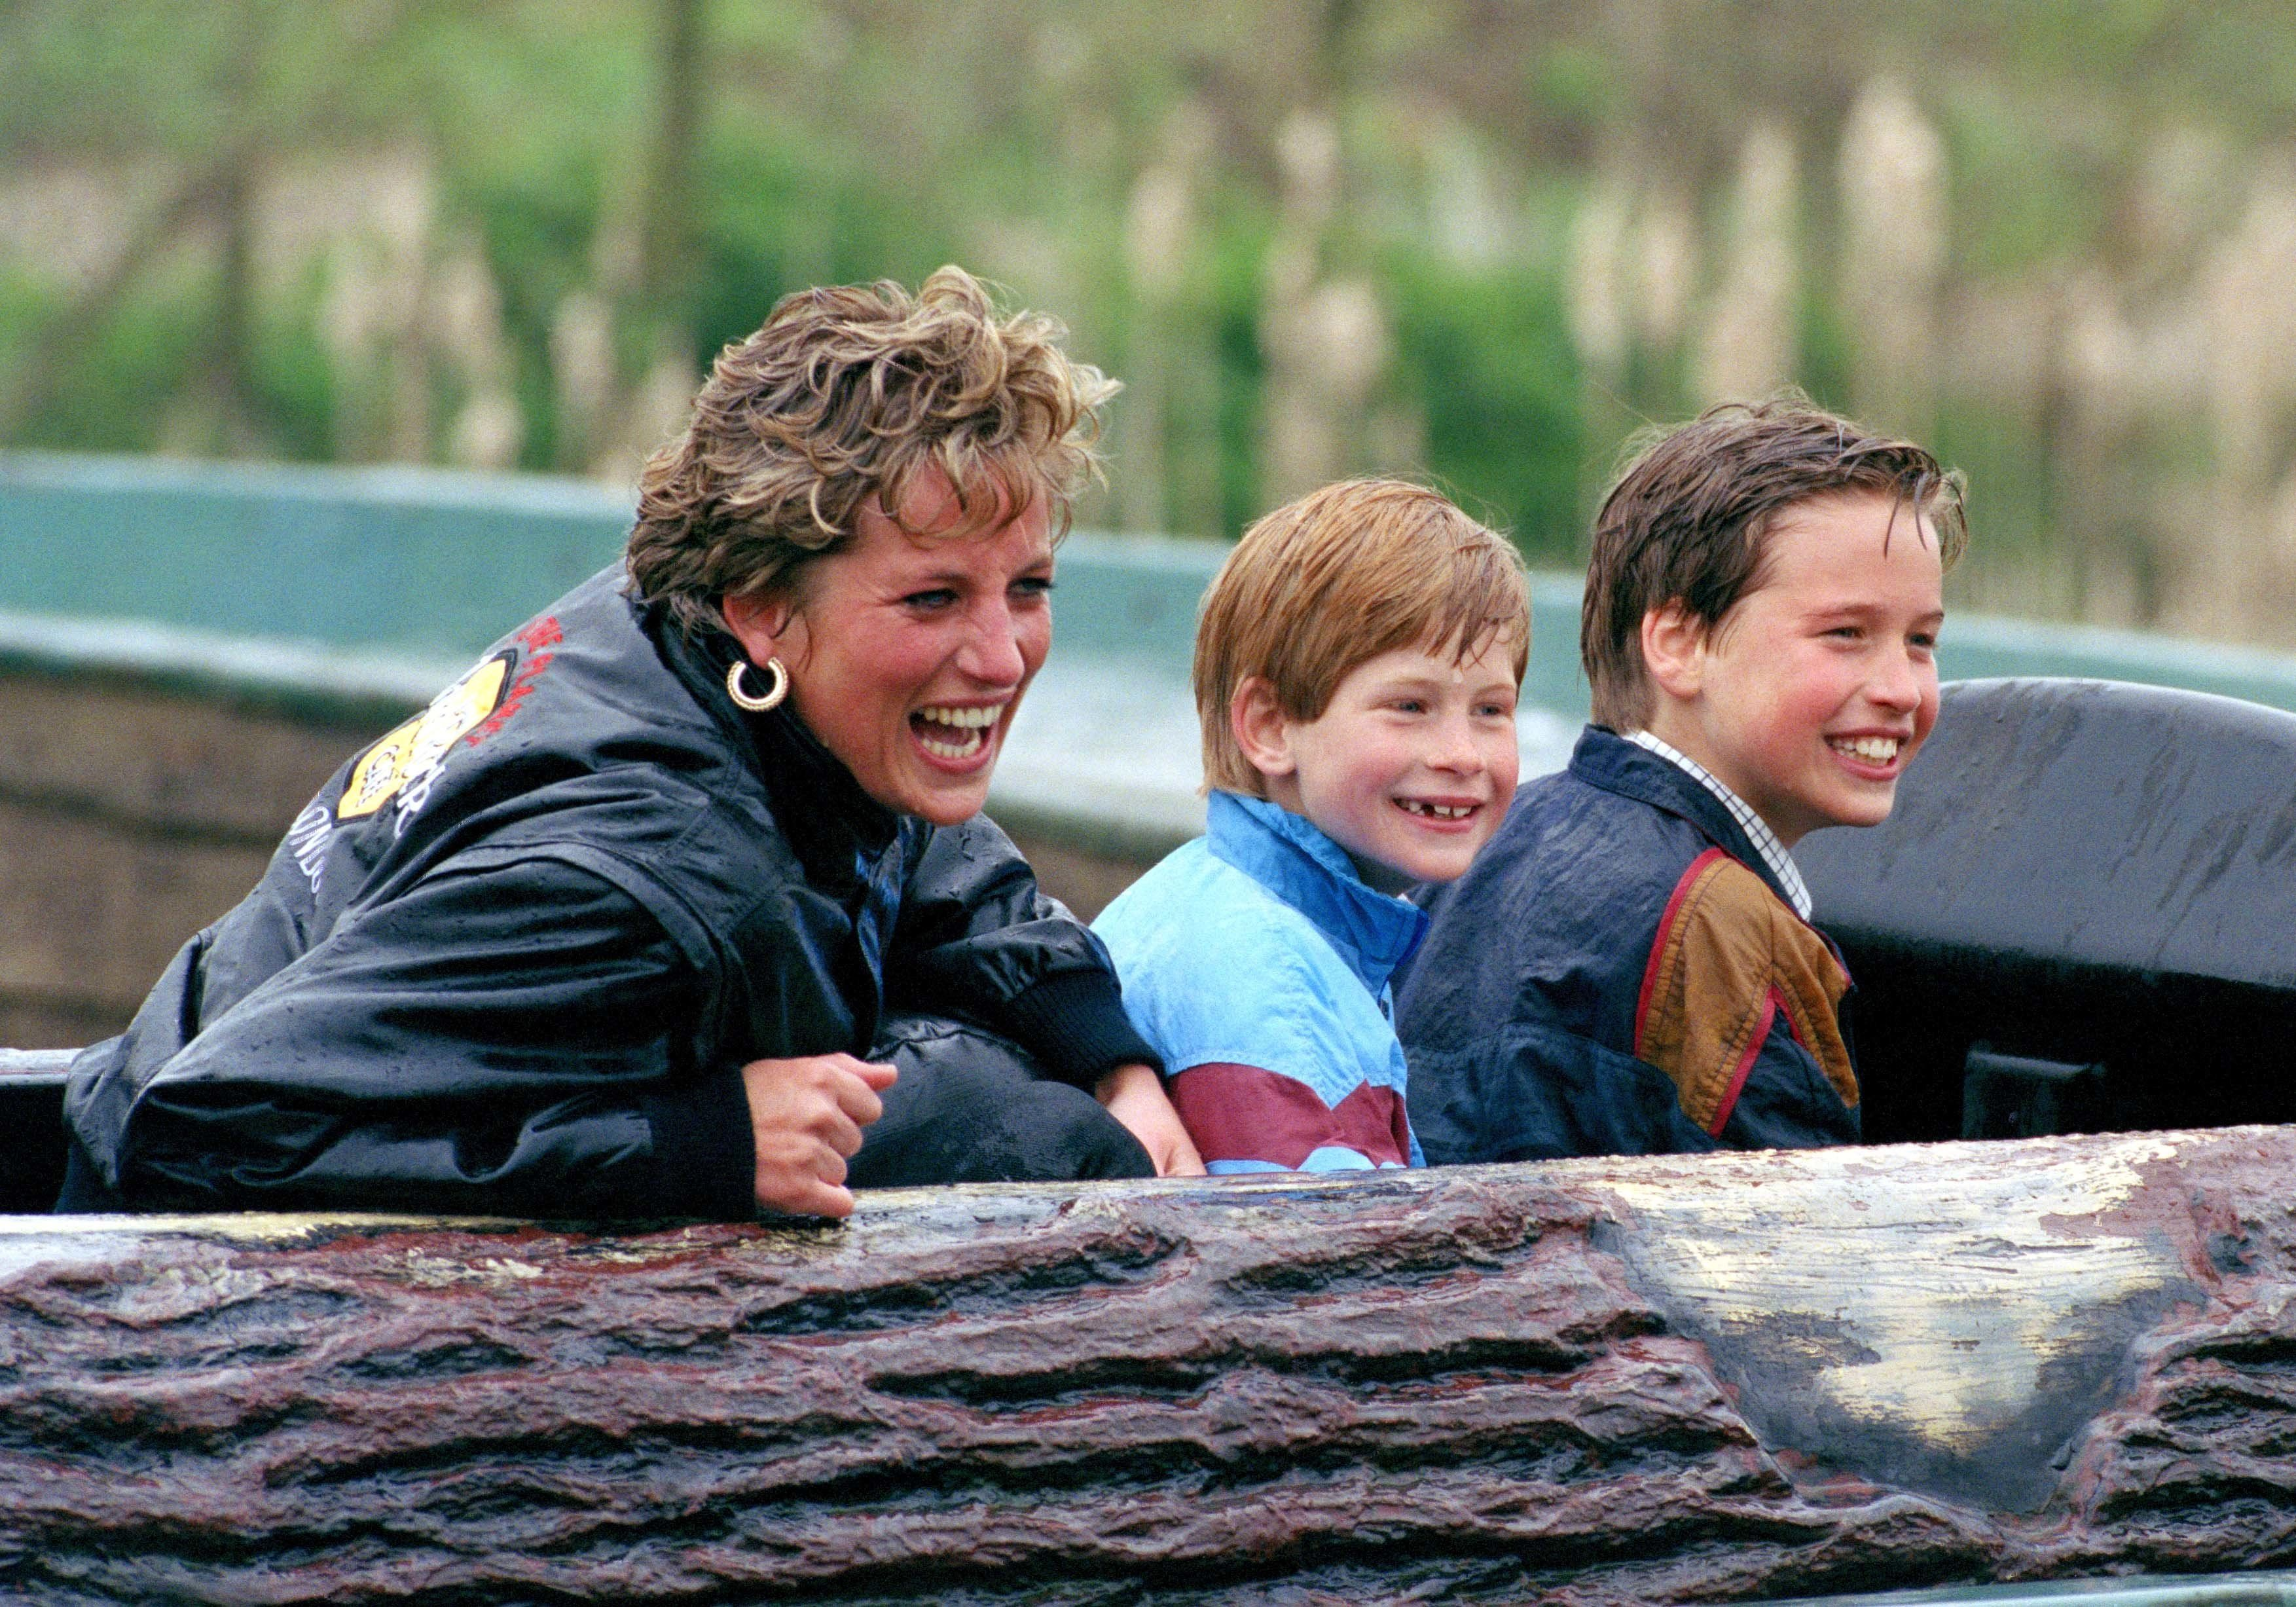 Princess Diana, Prince William and Prince Harry at an amusement park in 1993.